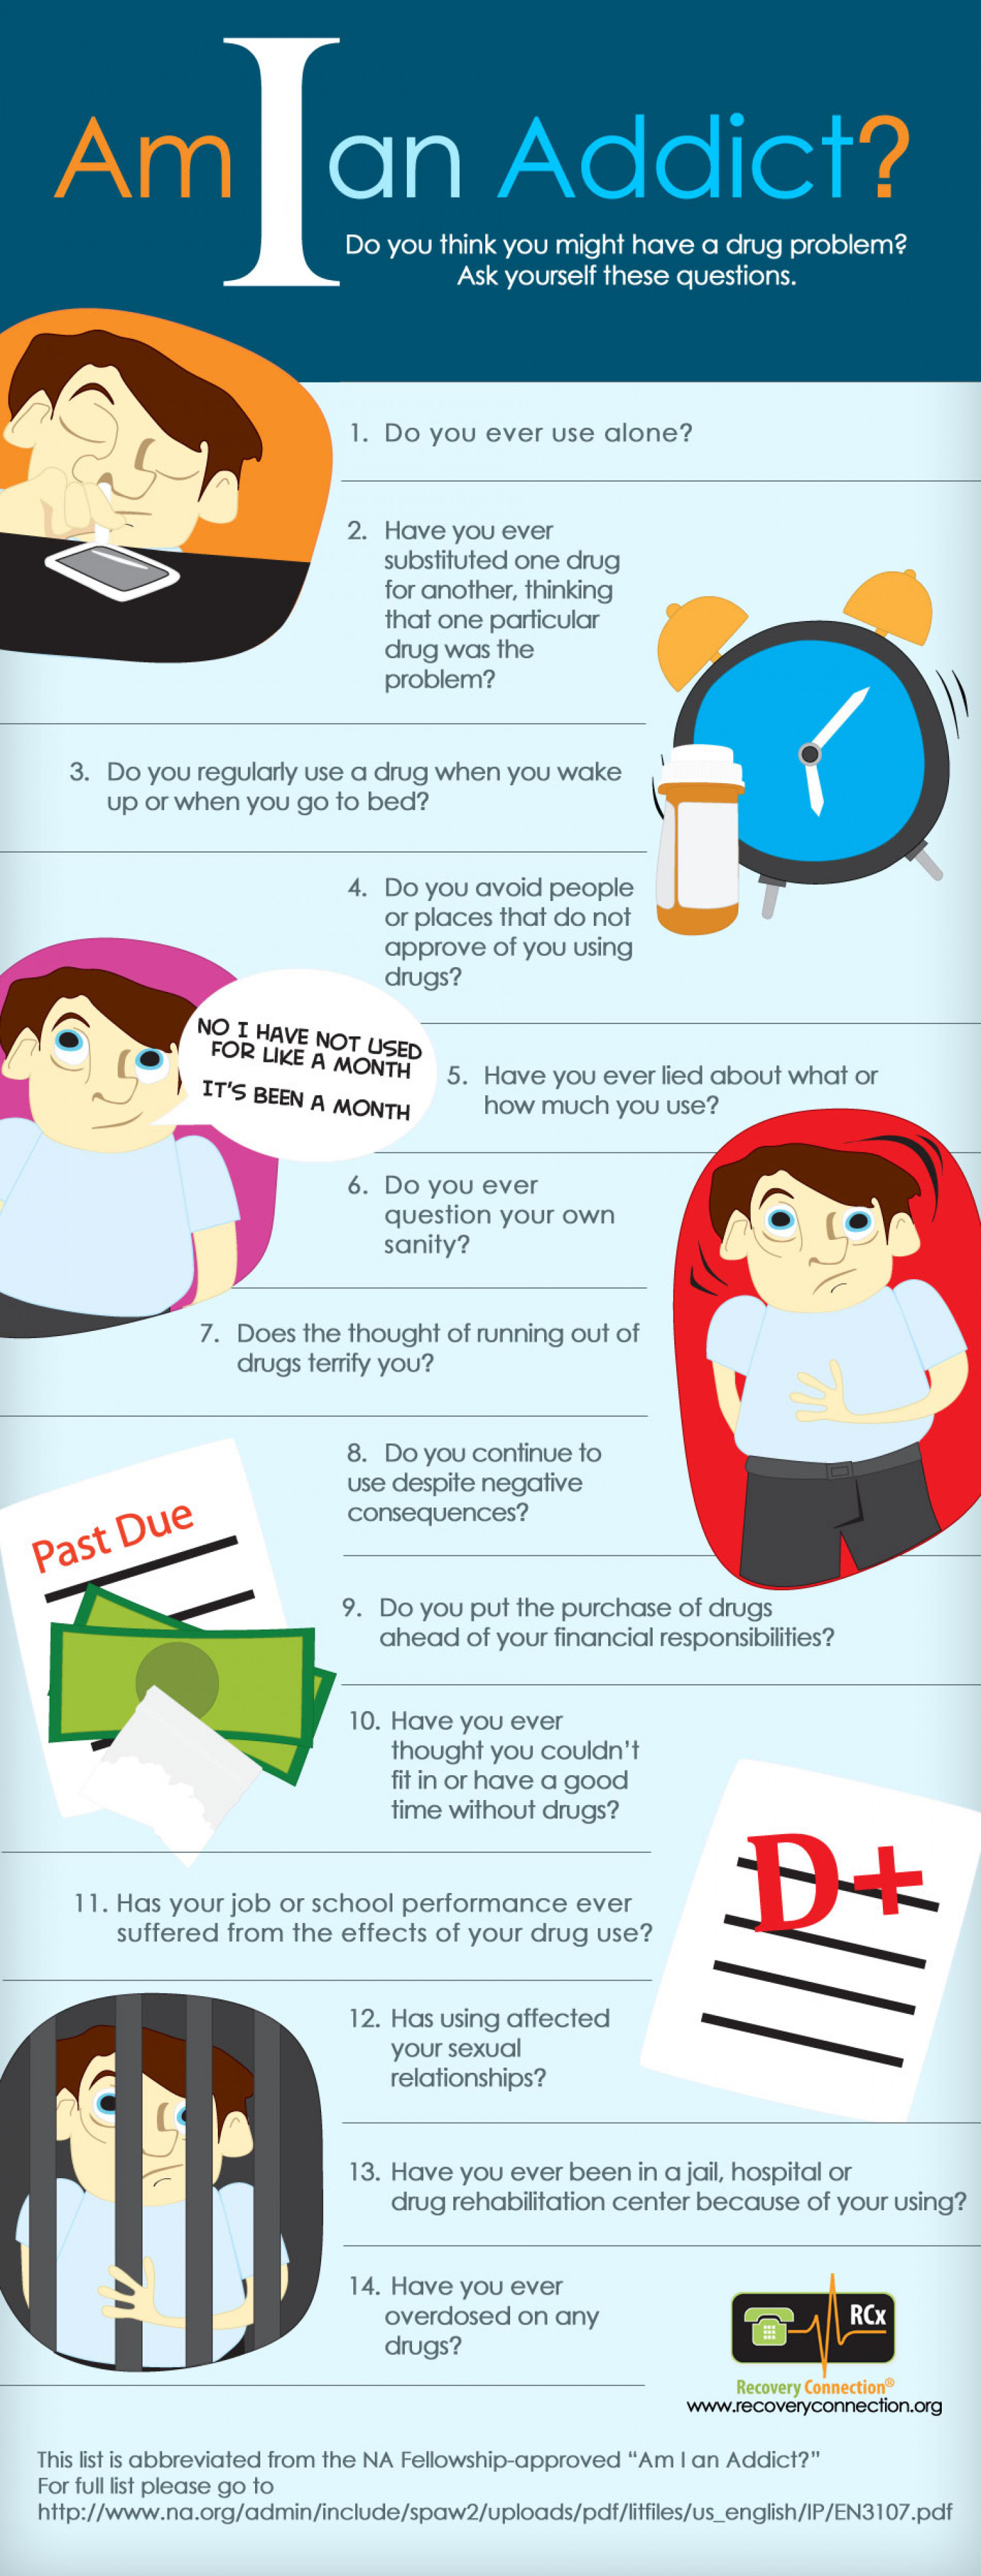 Am I a Drug Addict - Signs of Addiction Infographic